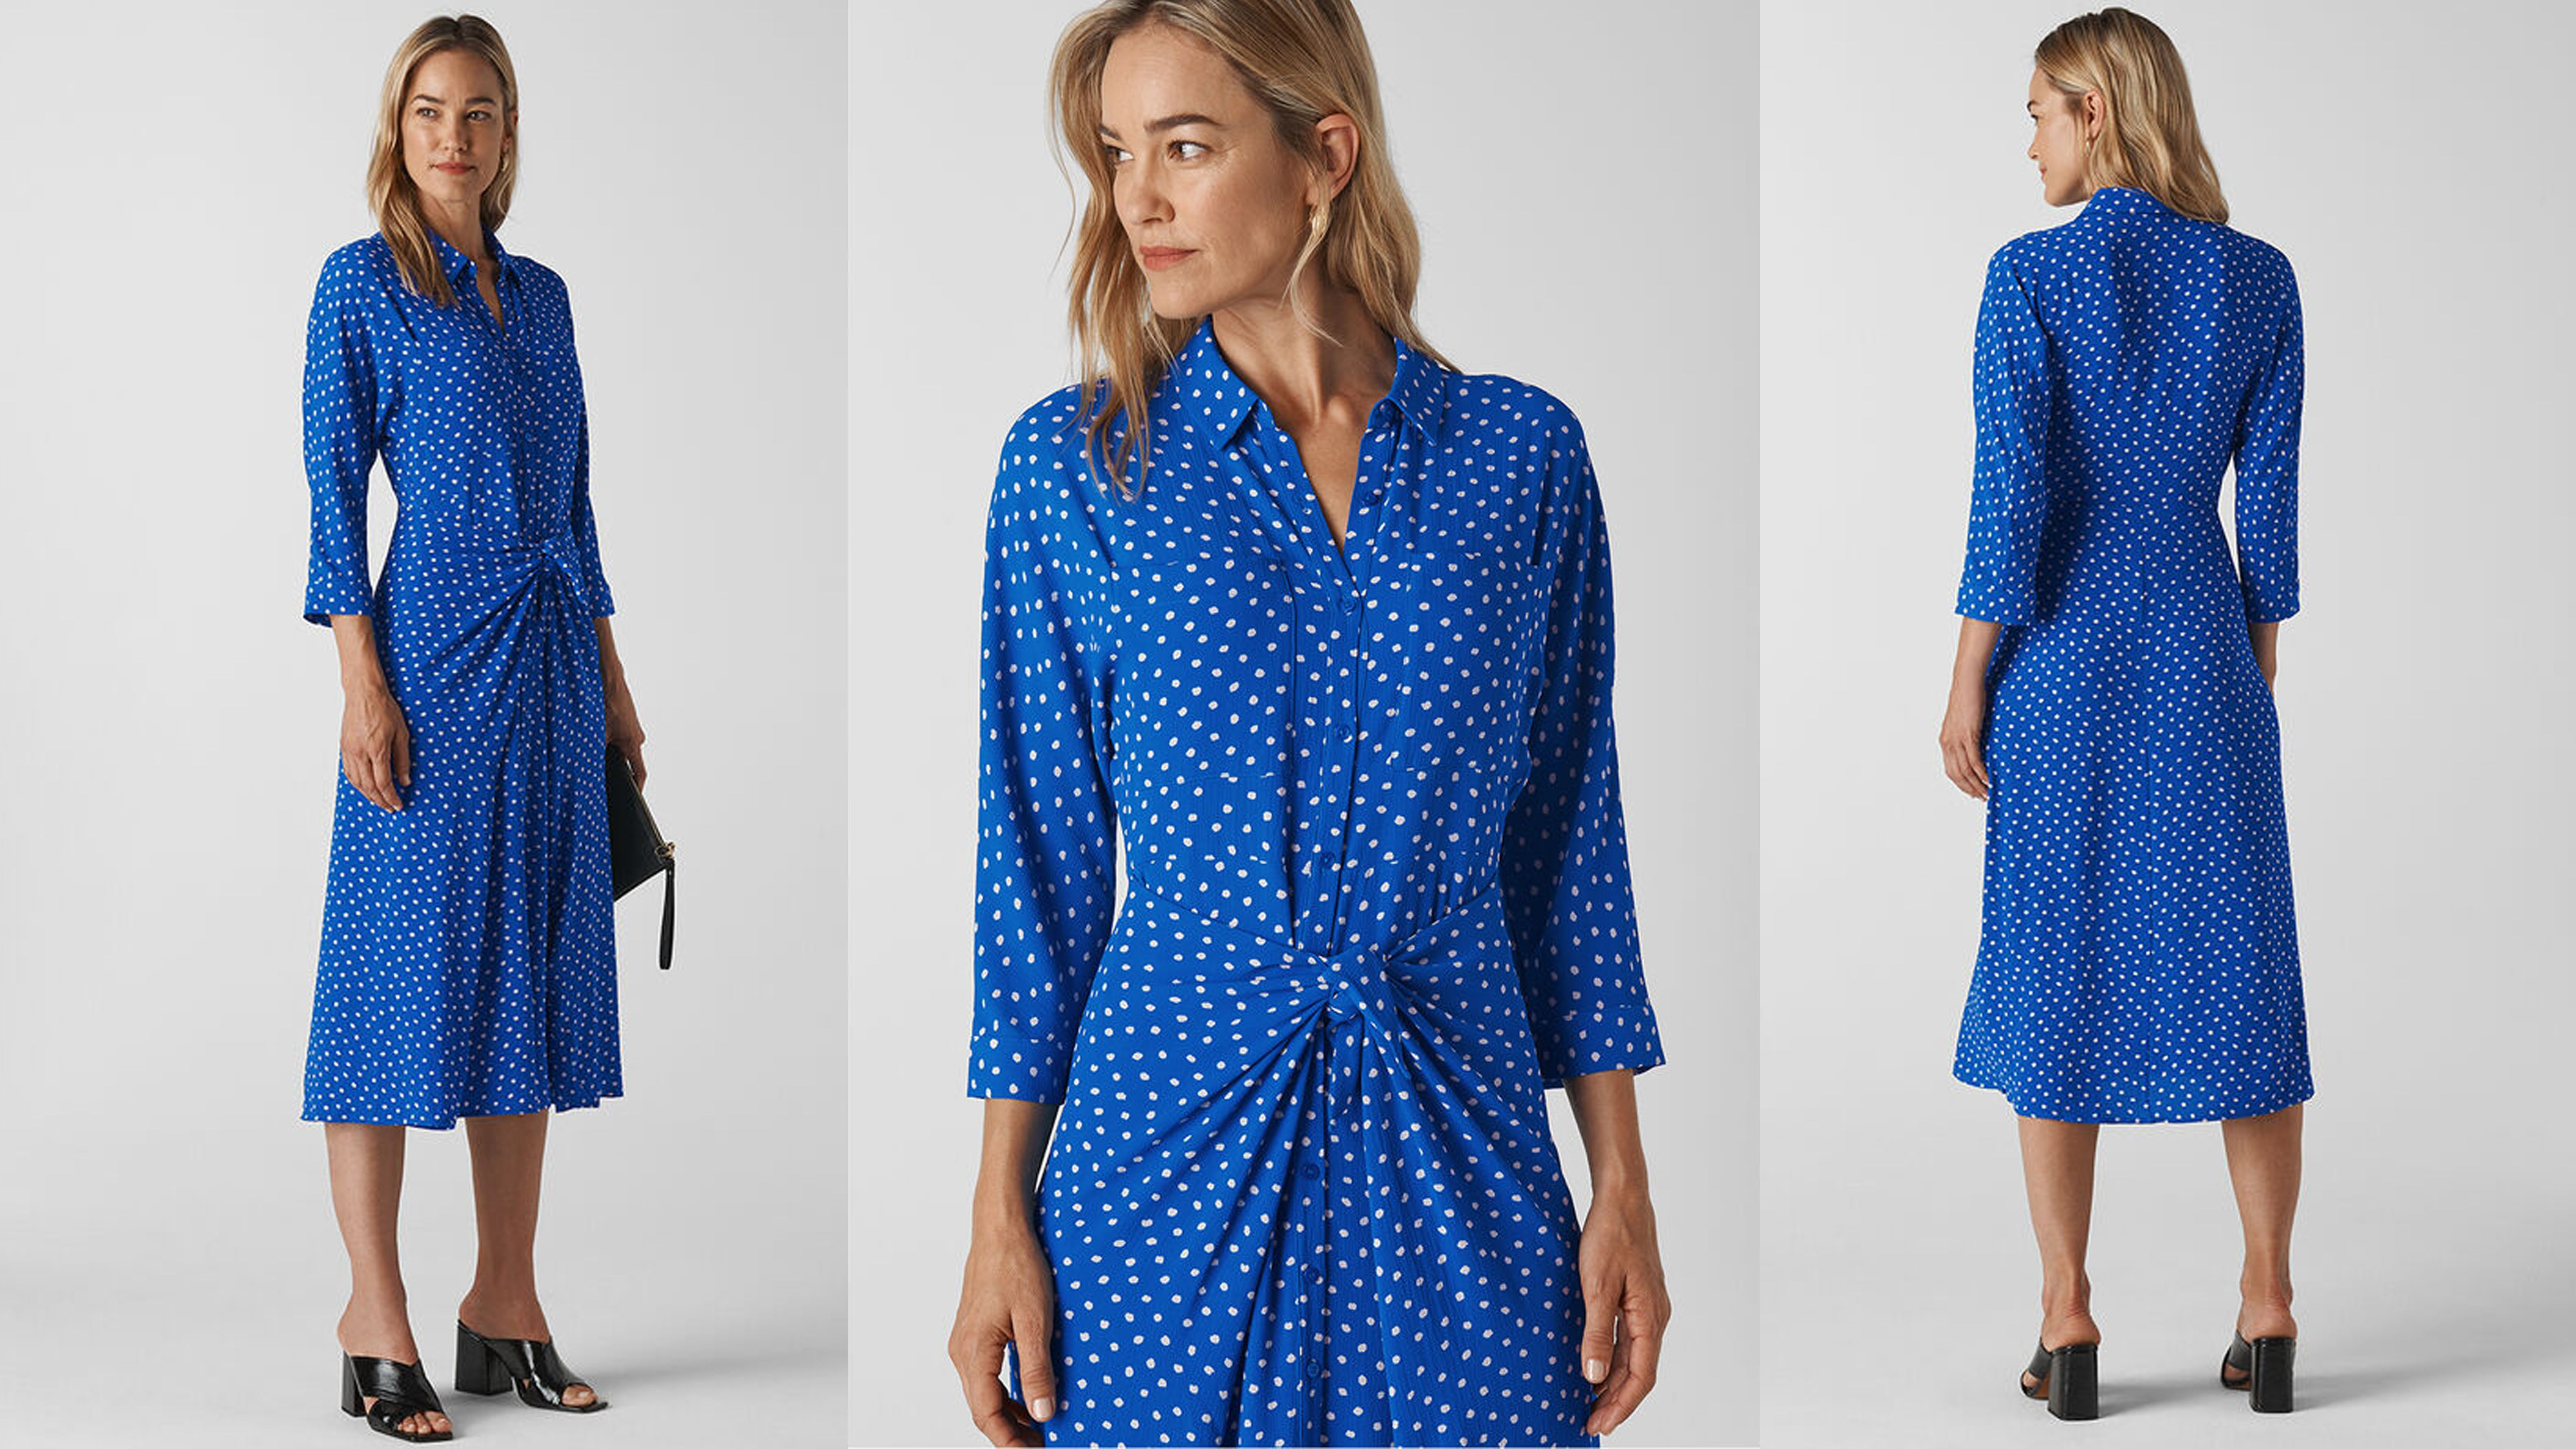 Whistles has re-stocked its popular polka-dot dress in a new colour